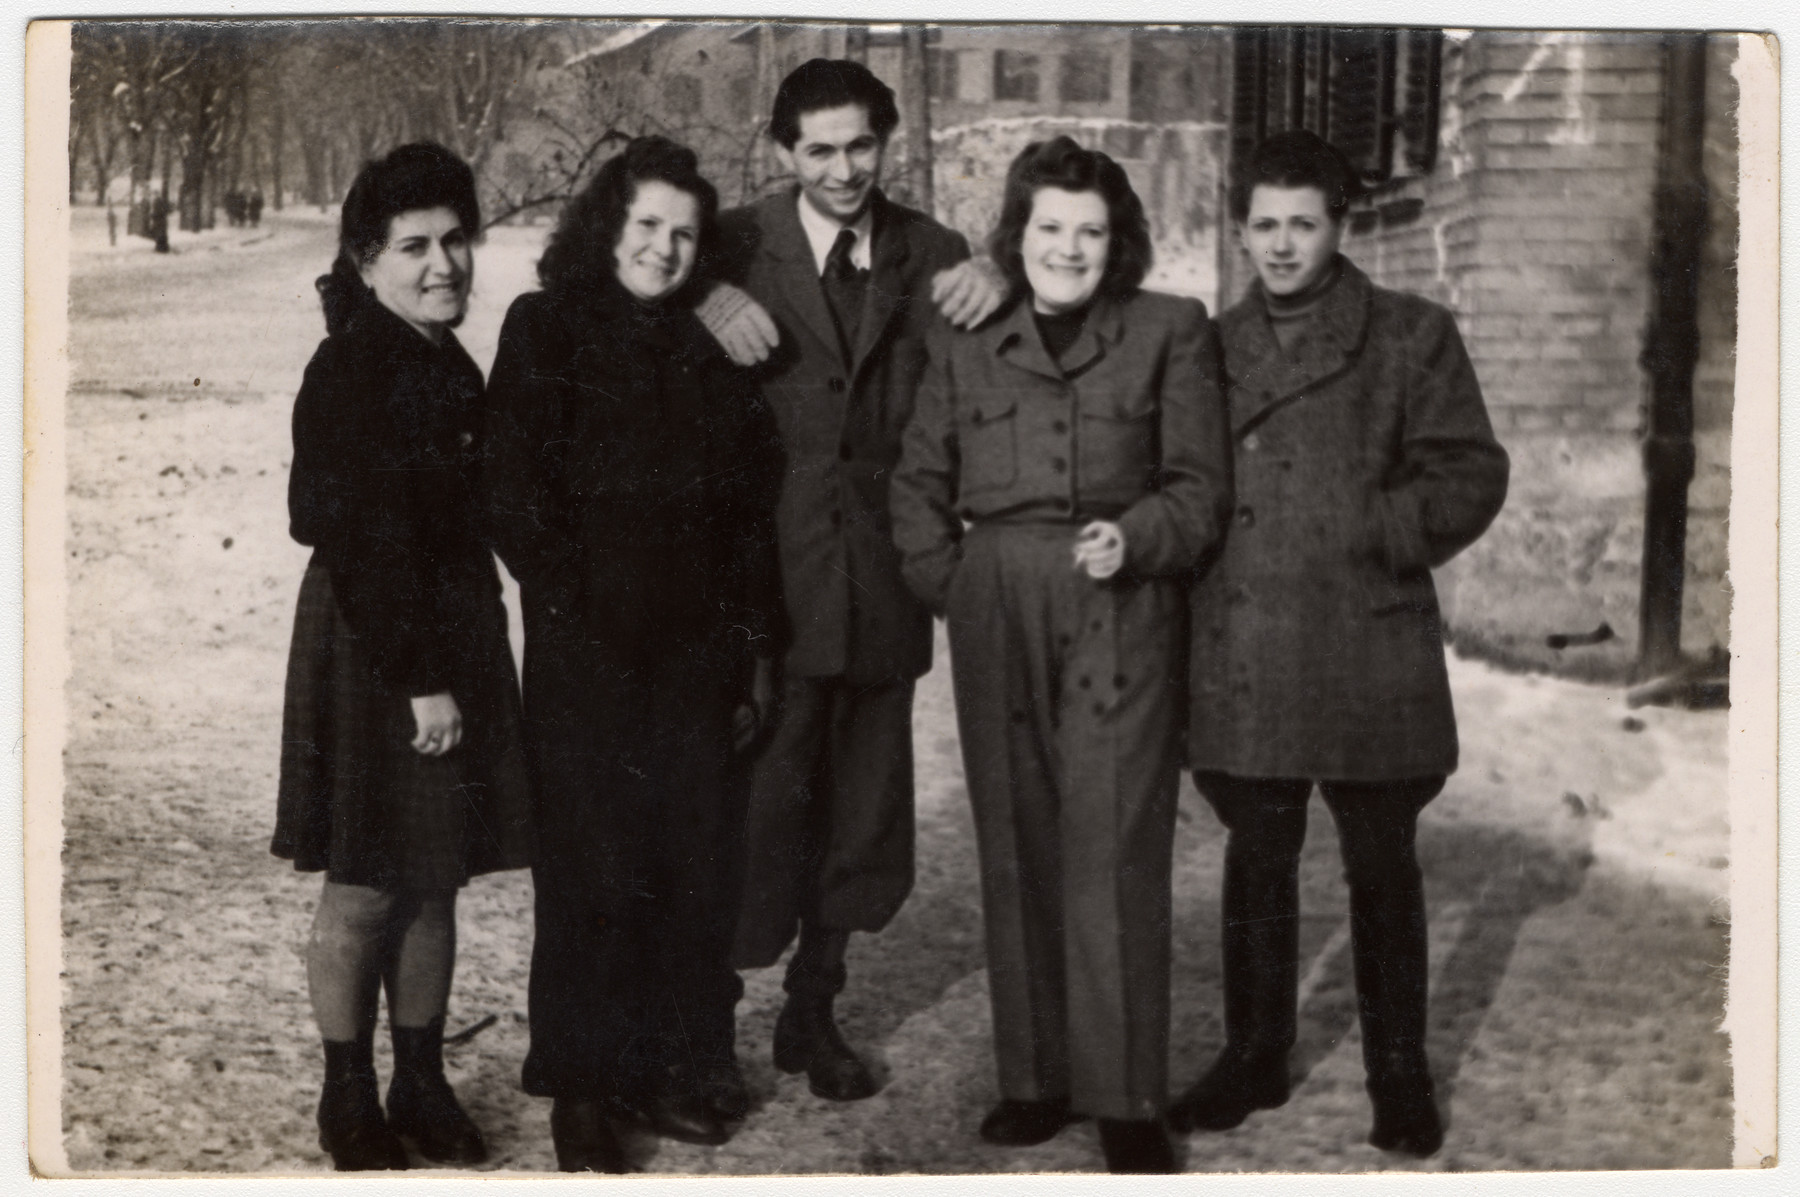 Group portrait of young adults in the Gabersee displaced persons camp.  Asher Zelig Slomowitz stands in the center.